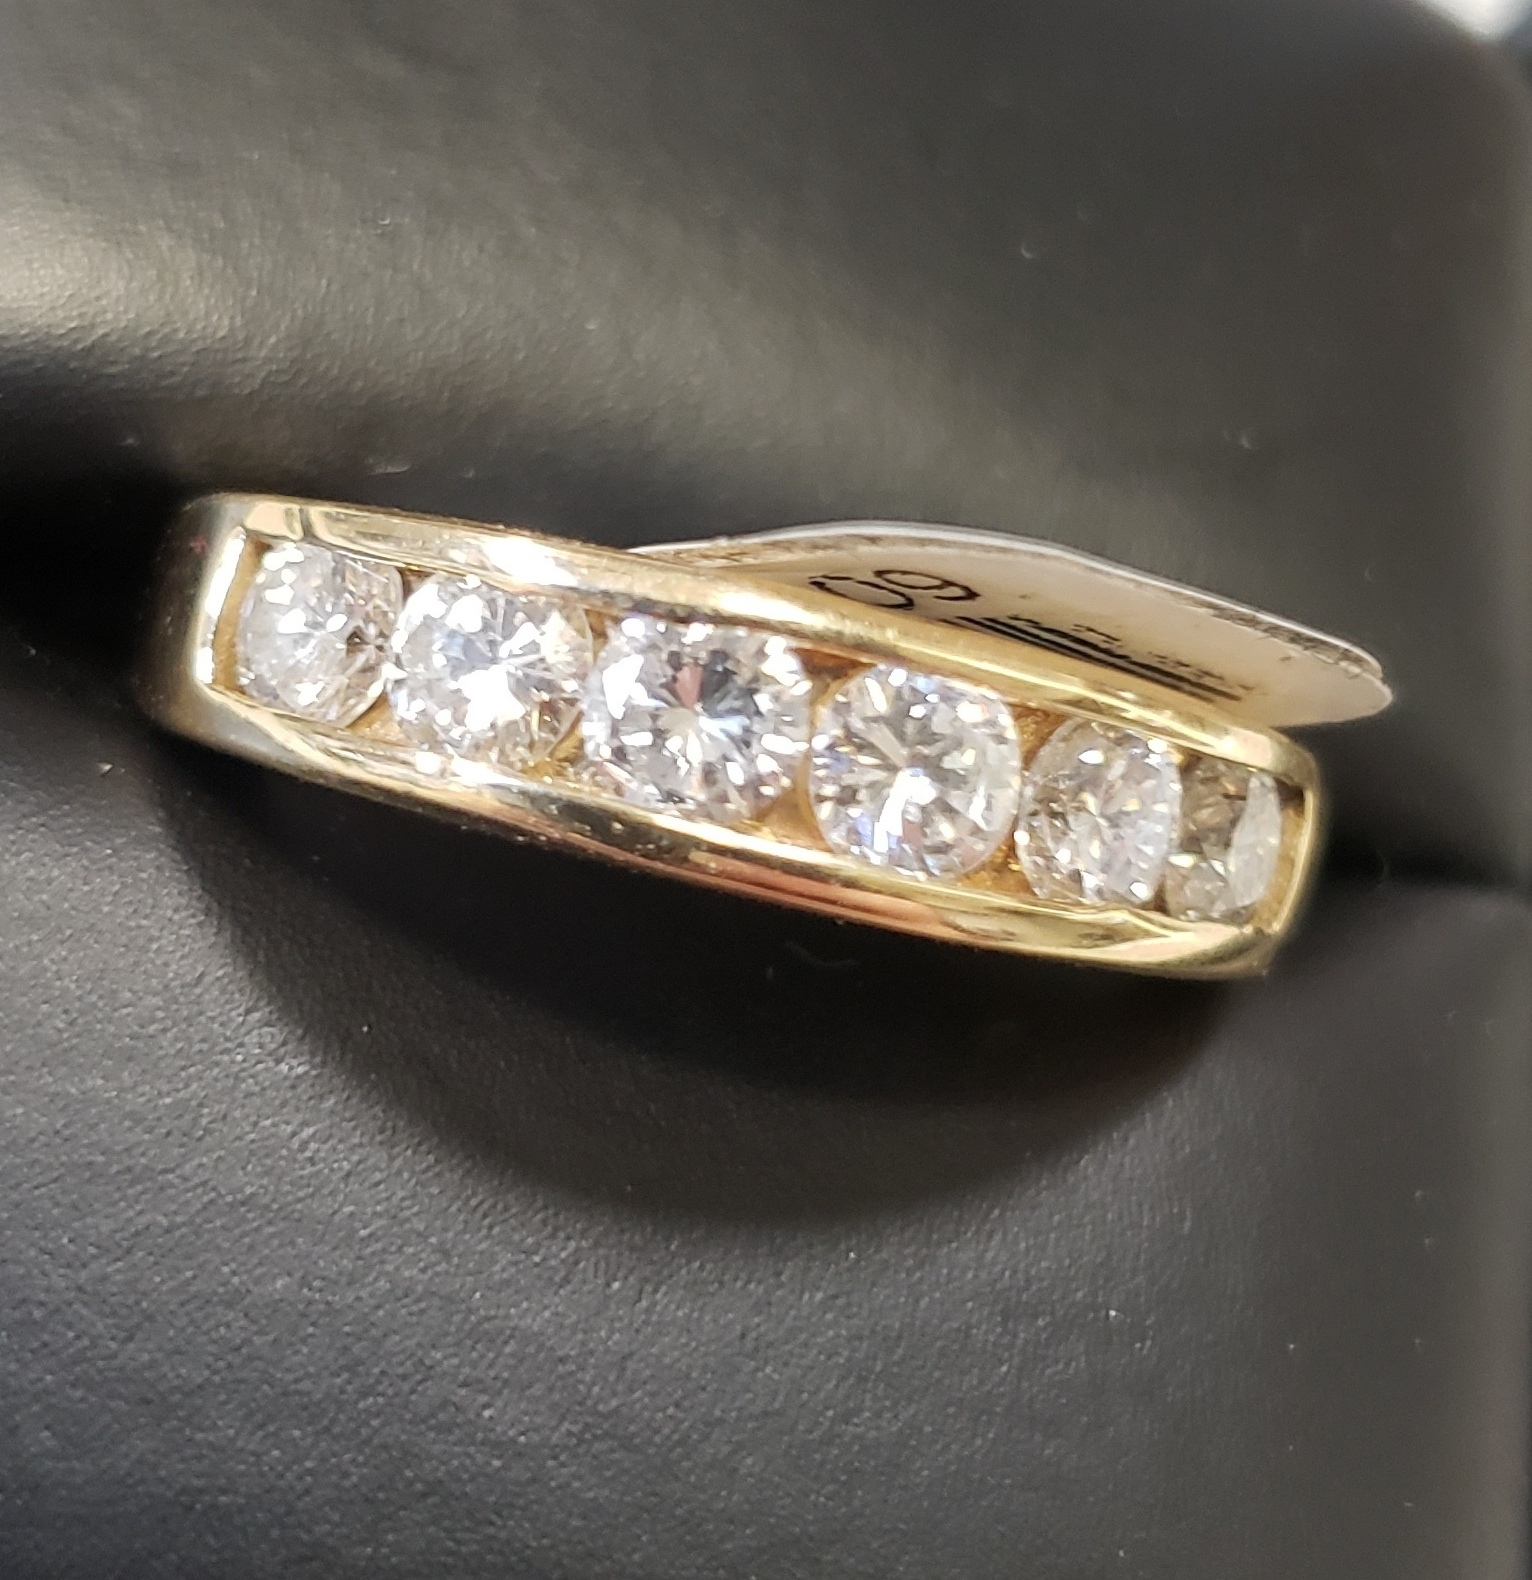 10KT - SIZE 8.5 - YELLOW GOLD - APPROX. 1.20 CT TW ROUND DIAMOND INLAY BAND